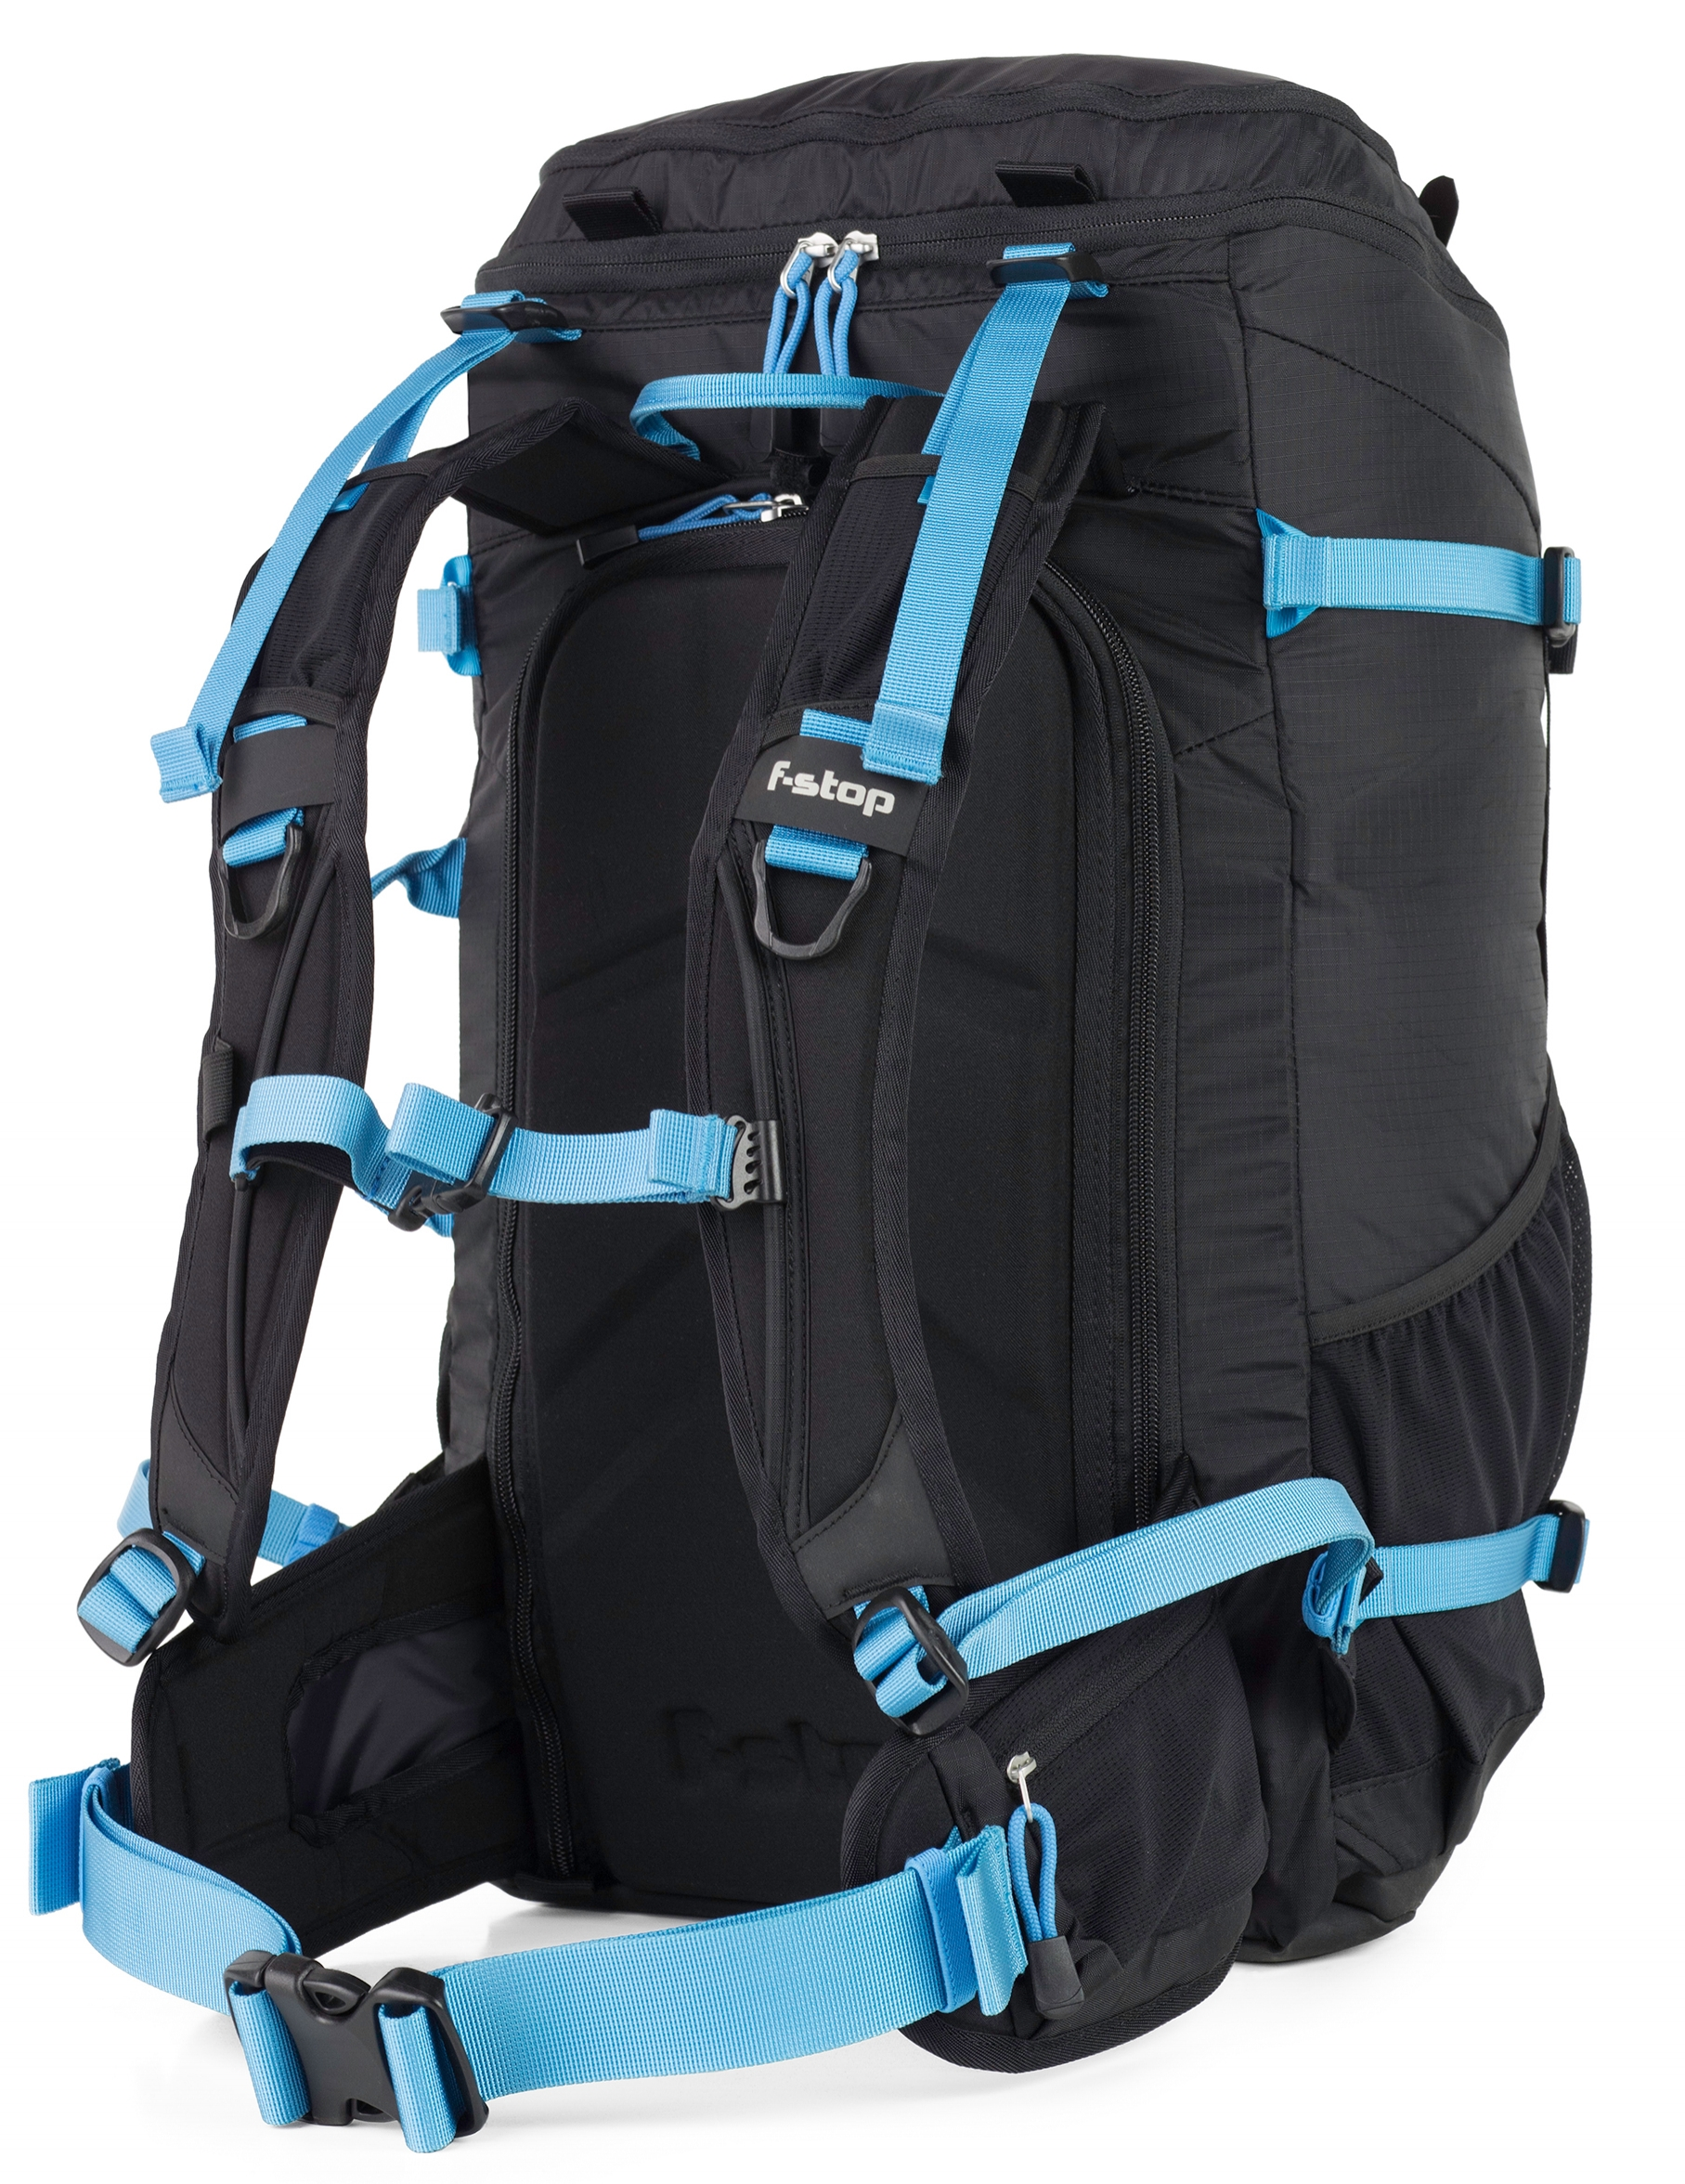 Allie prefers an F-Stop Kashmir, because it's designed specifically for a woman's shorter torso, distributing the weight more ergonomically on her hips. A men's backpack puts too much of the weight on her shoulders, leading to fatigue.There are very few camera bags for women out there with thoughtful design like this!